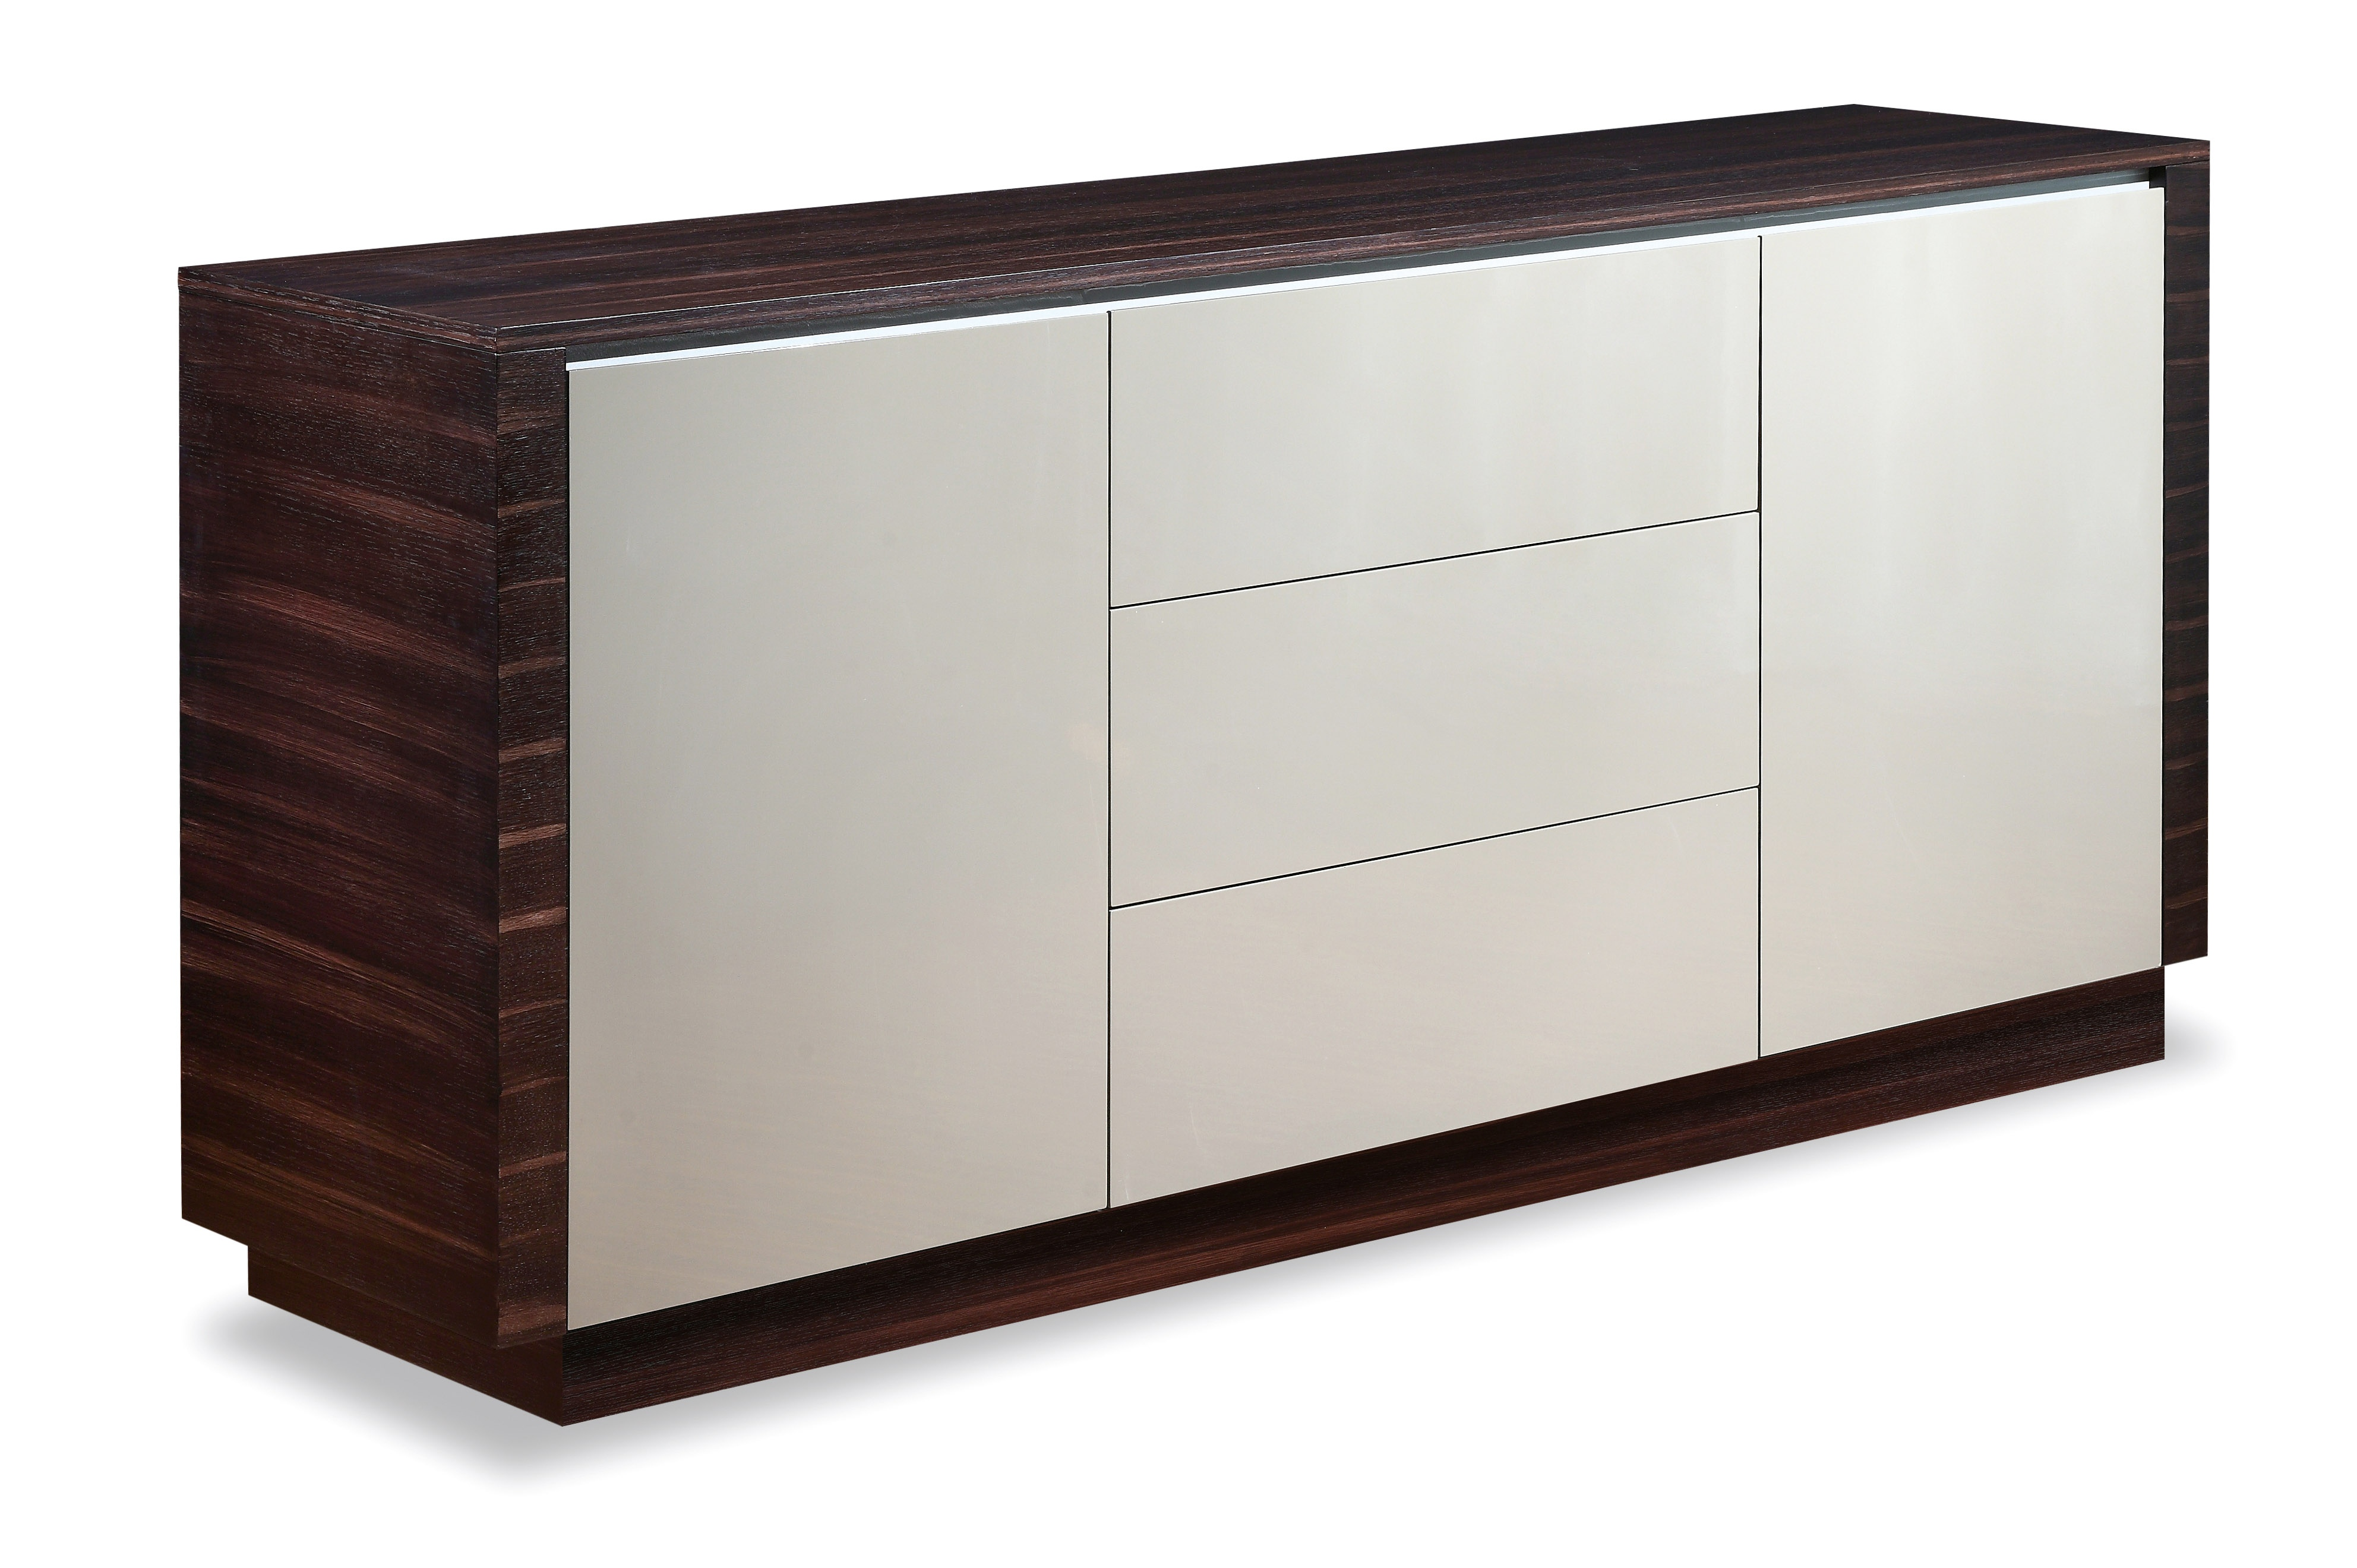 Modern And Italian Buffets Stylish Accessories Grey With Walnut Doors Dining Room